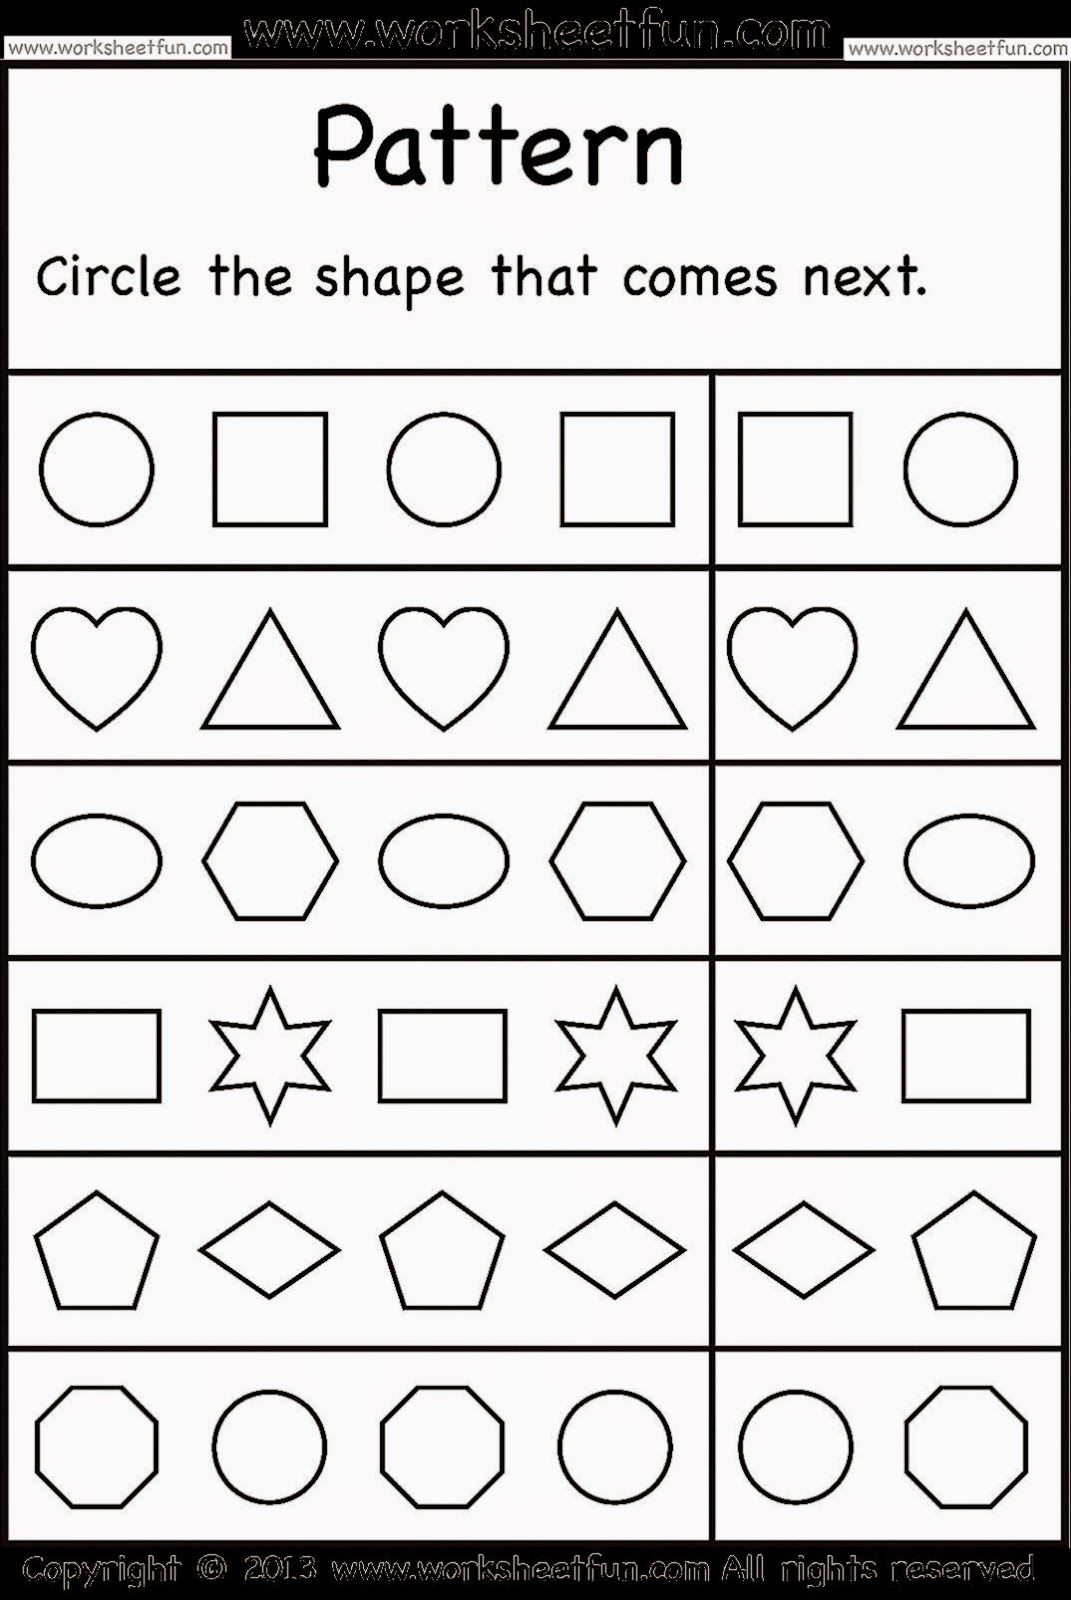 Kindergarten Worksheets Free Kindergarten Worksheets Pattern Worksheets For Kindergarten Pattern Worksheet